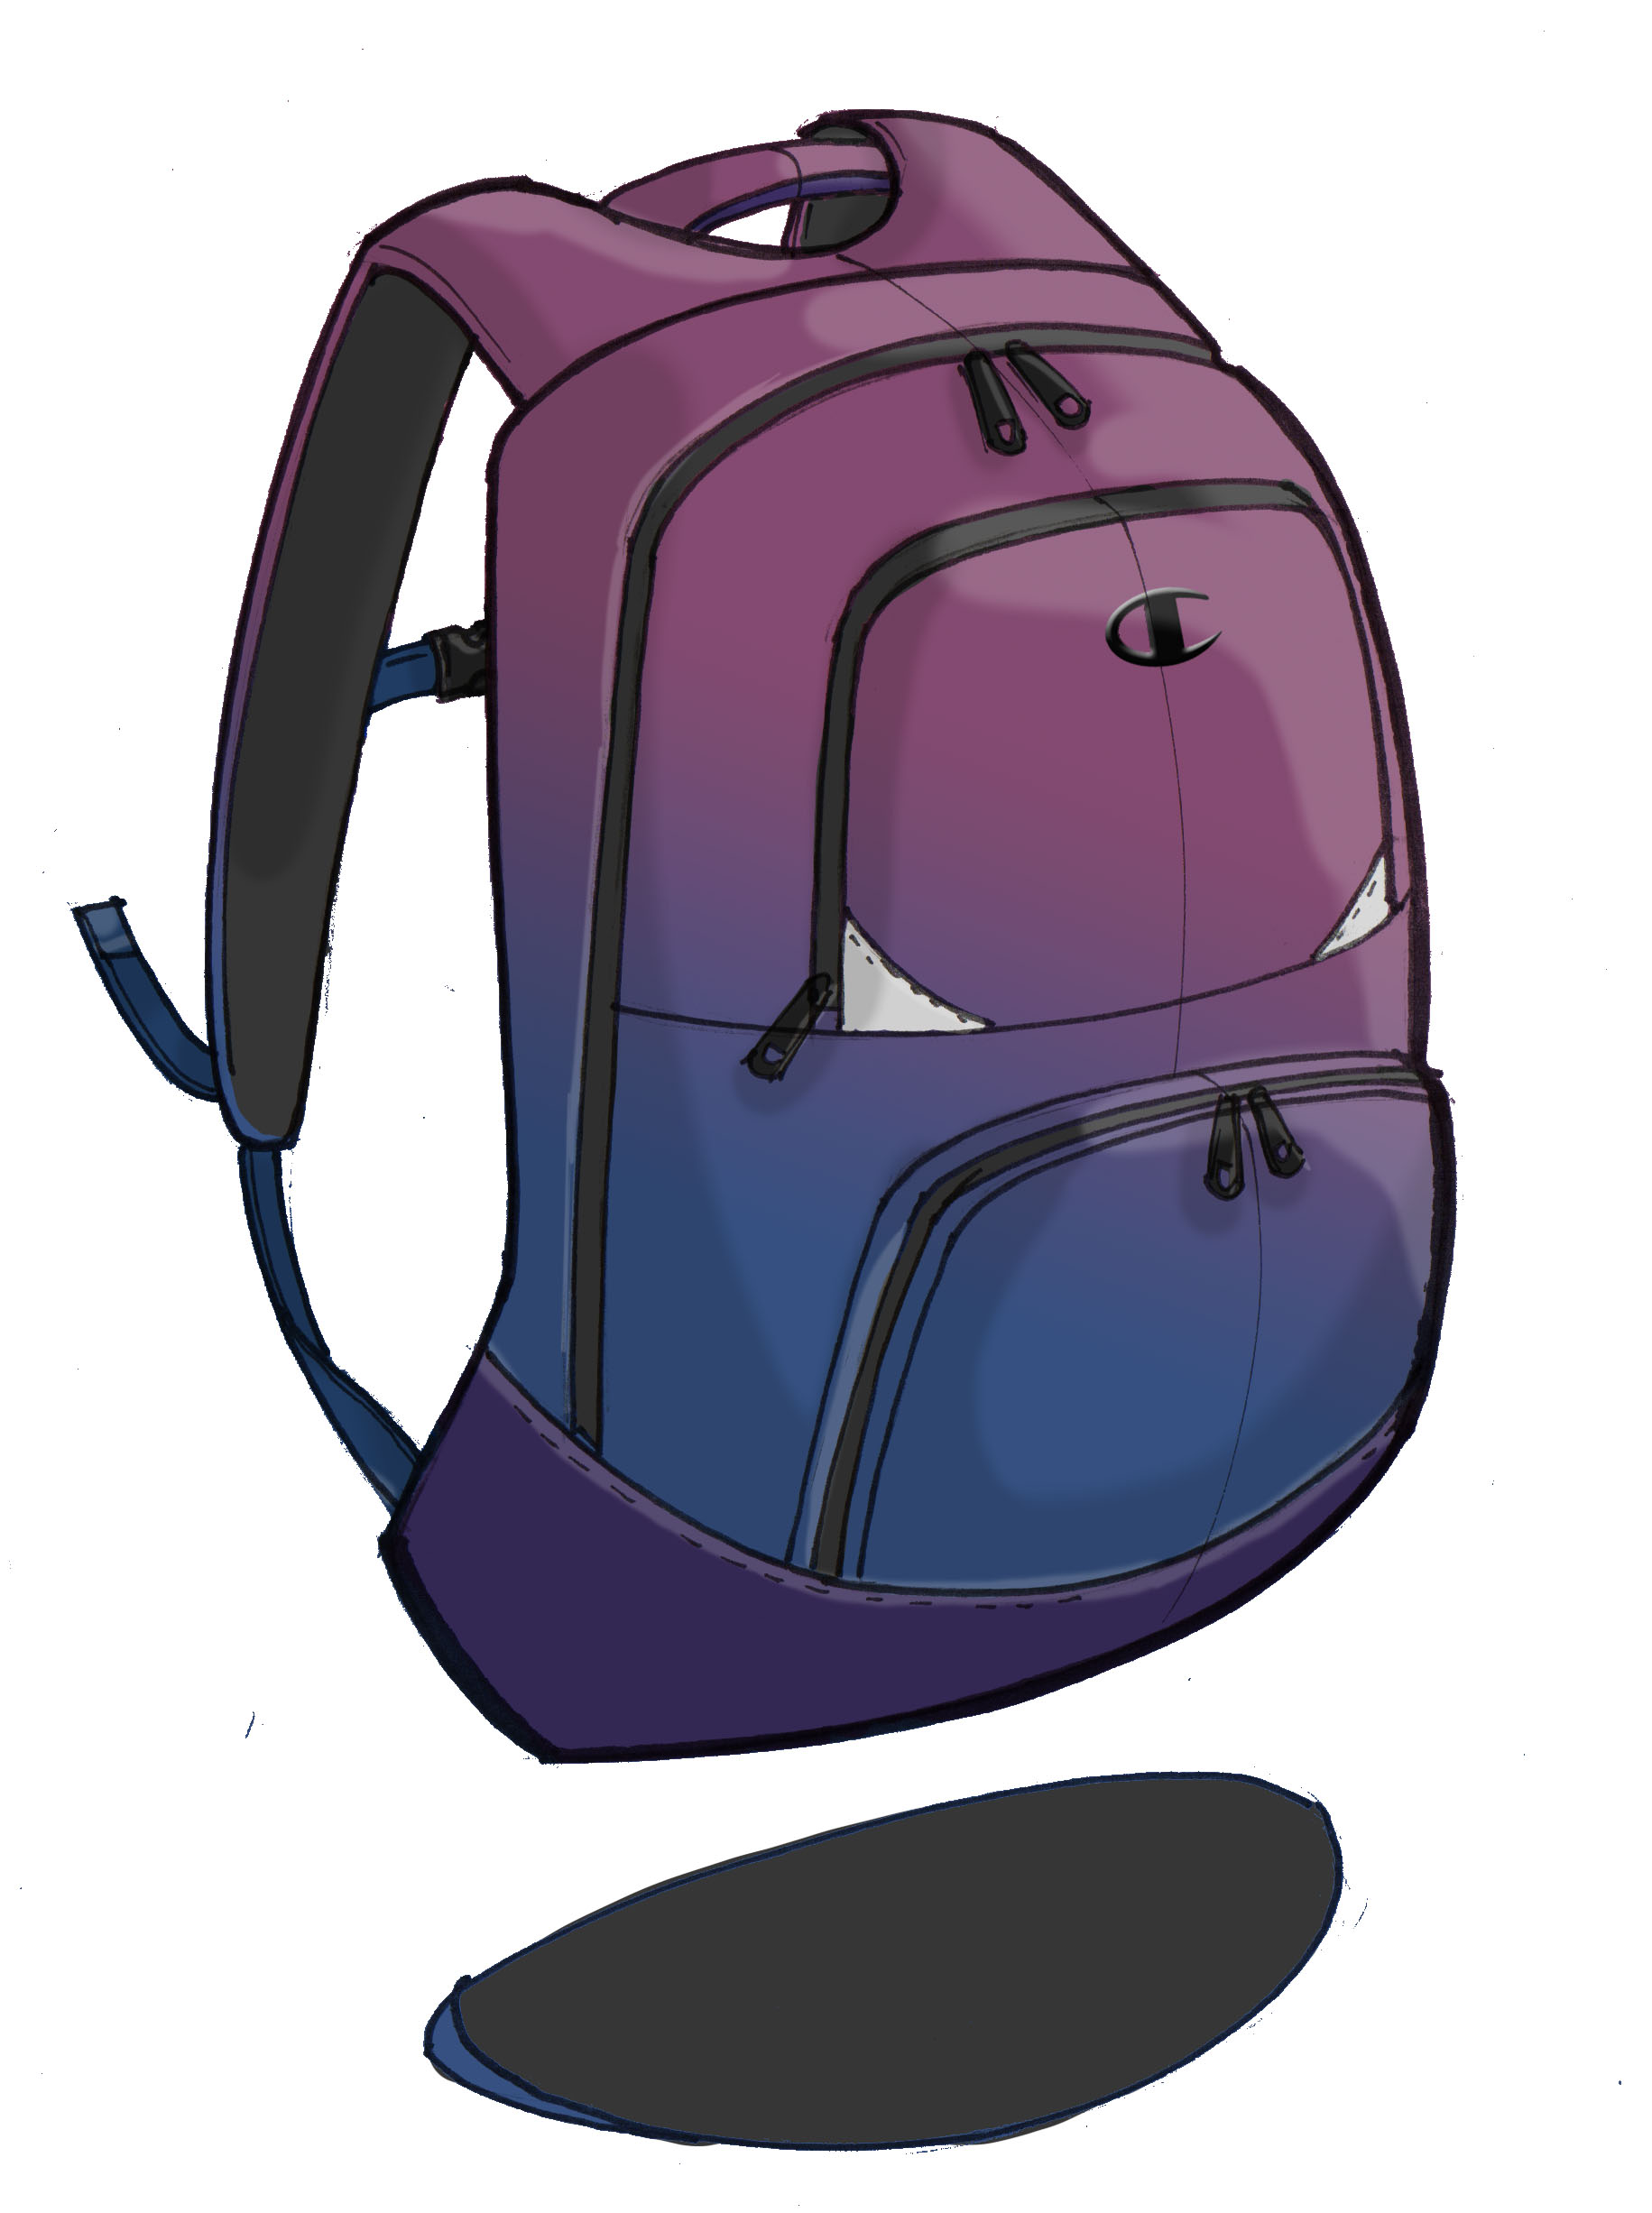 Champion Backpack 05 - A.jpg